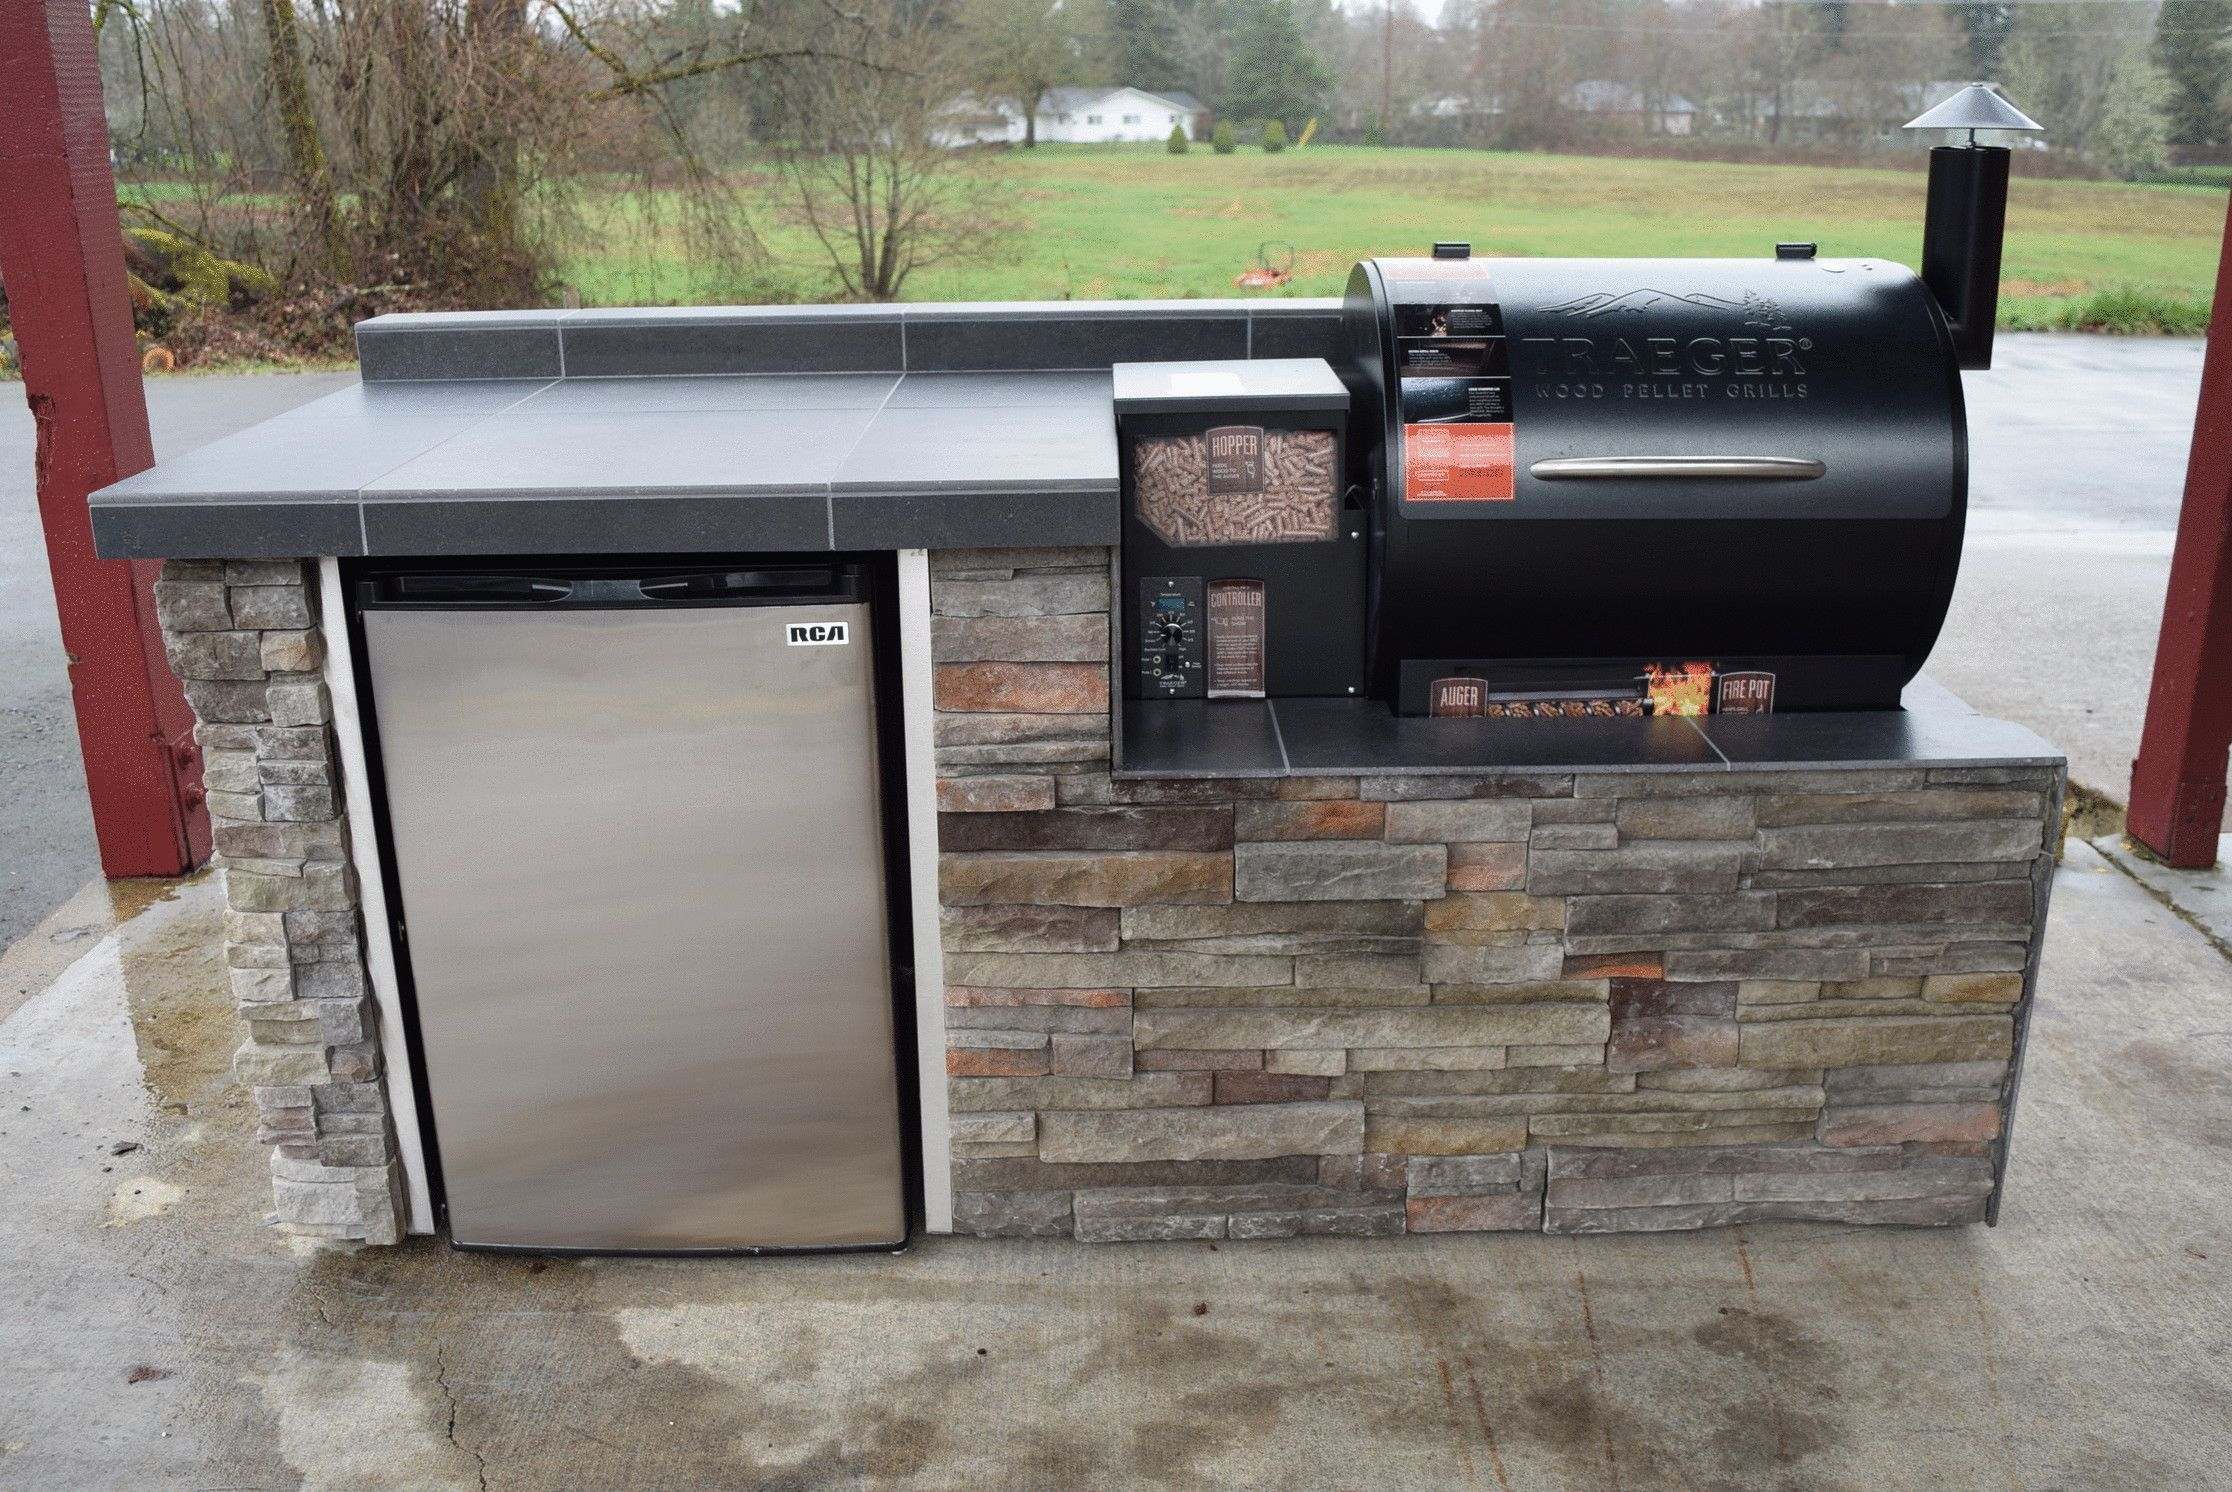 Image Result For Outdoor Kitchen With Traeger Outdoor Kitchen Grill Outdoor Kitchen Modular Outdoor Kitchens